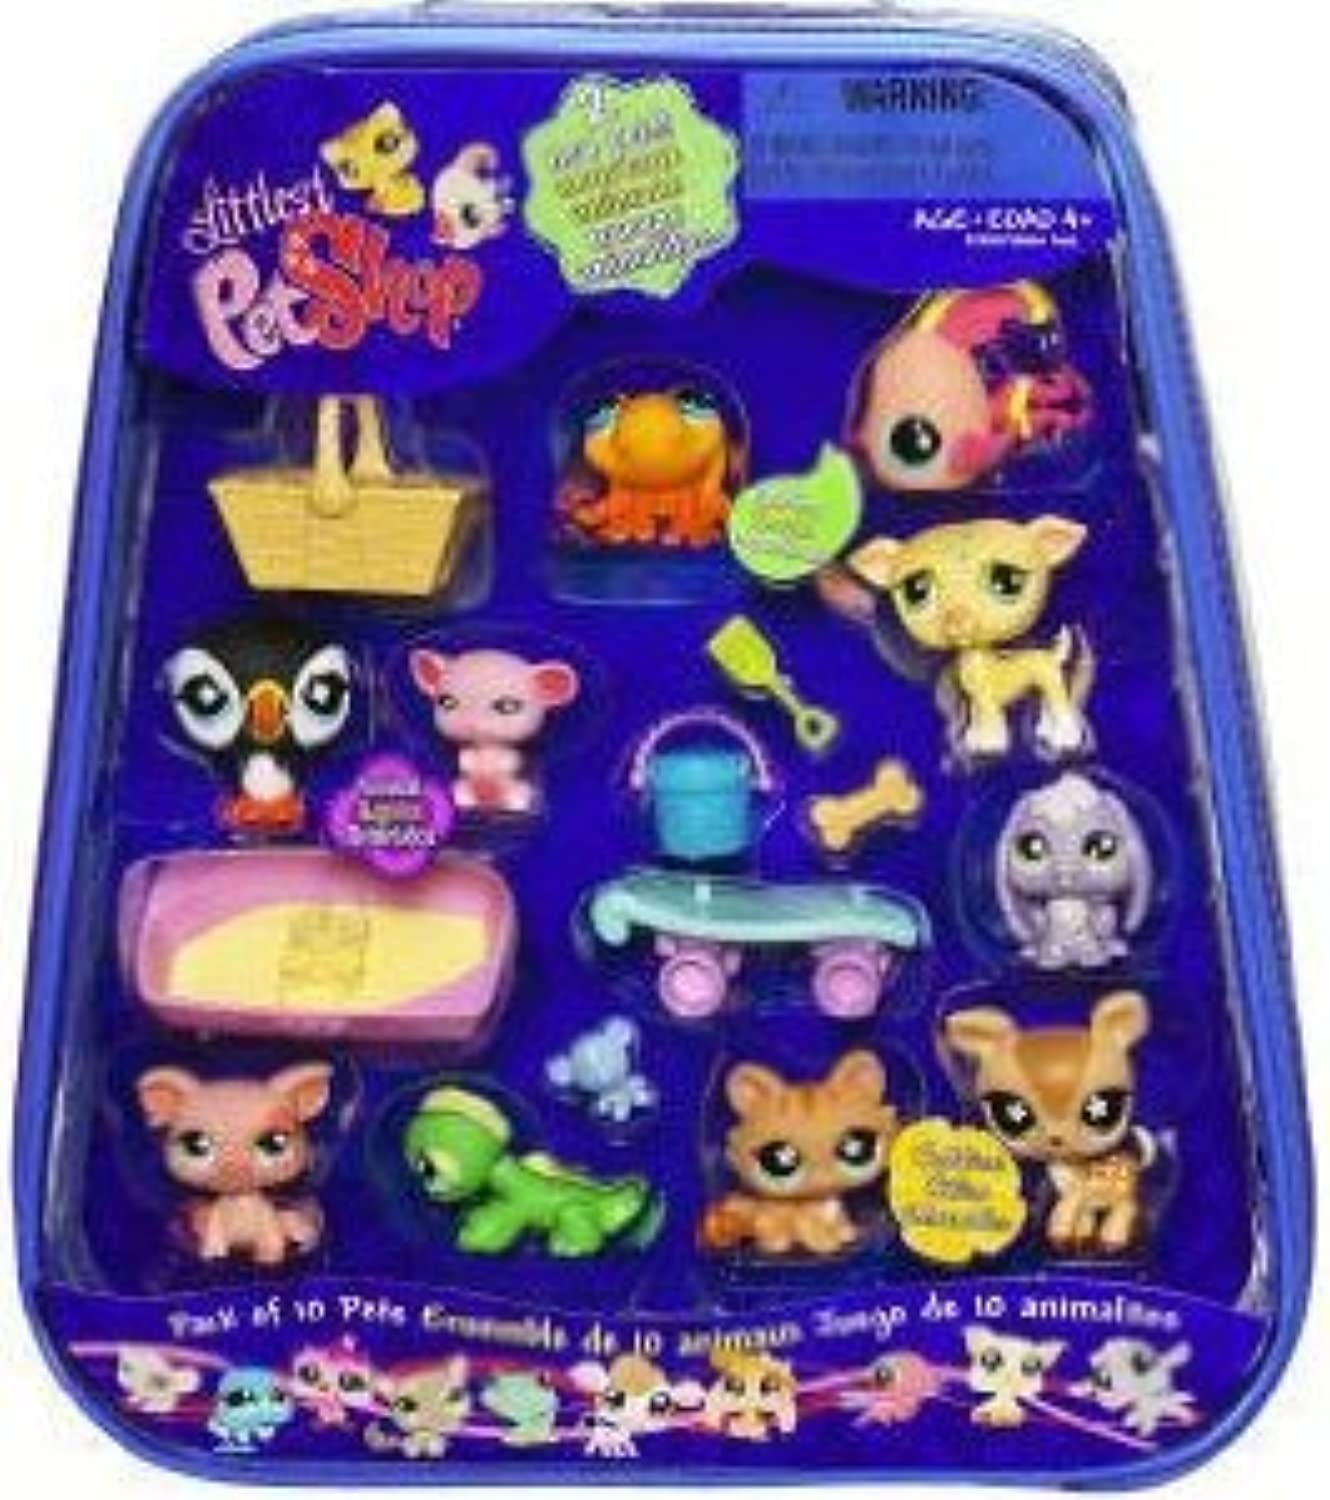 Littlest Pet Shop (リトルペットショップ) Exclusive Mega 10-Pack of Pets in Carry Case (Includes Puffin, Fish, Whippet and Deer)(並行輸入)